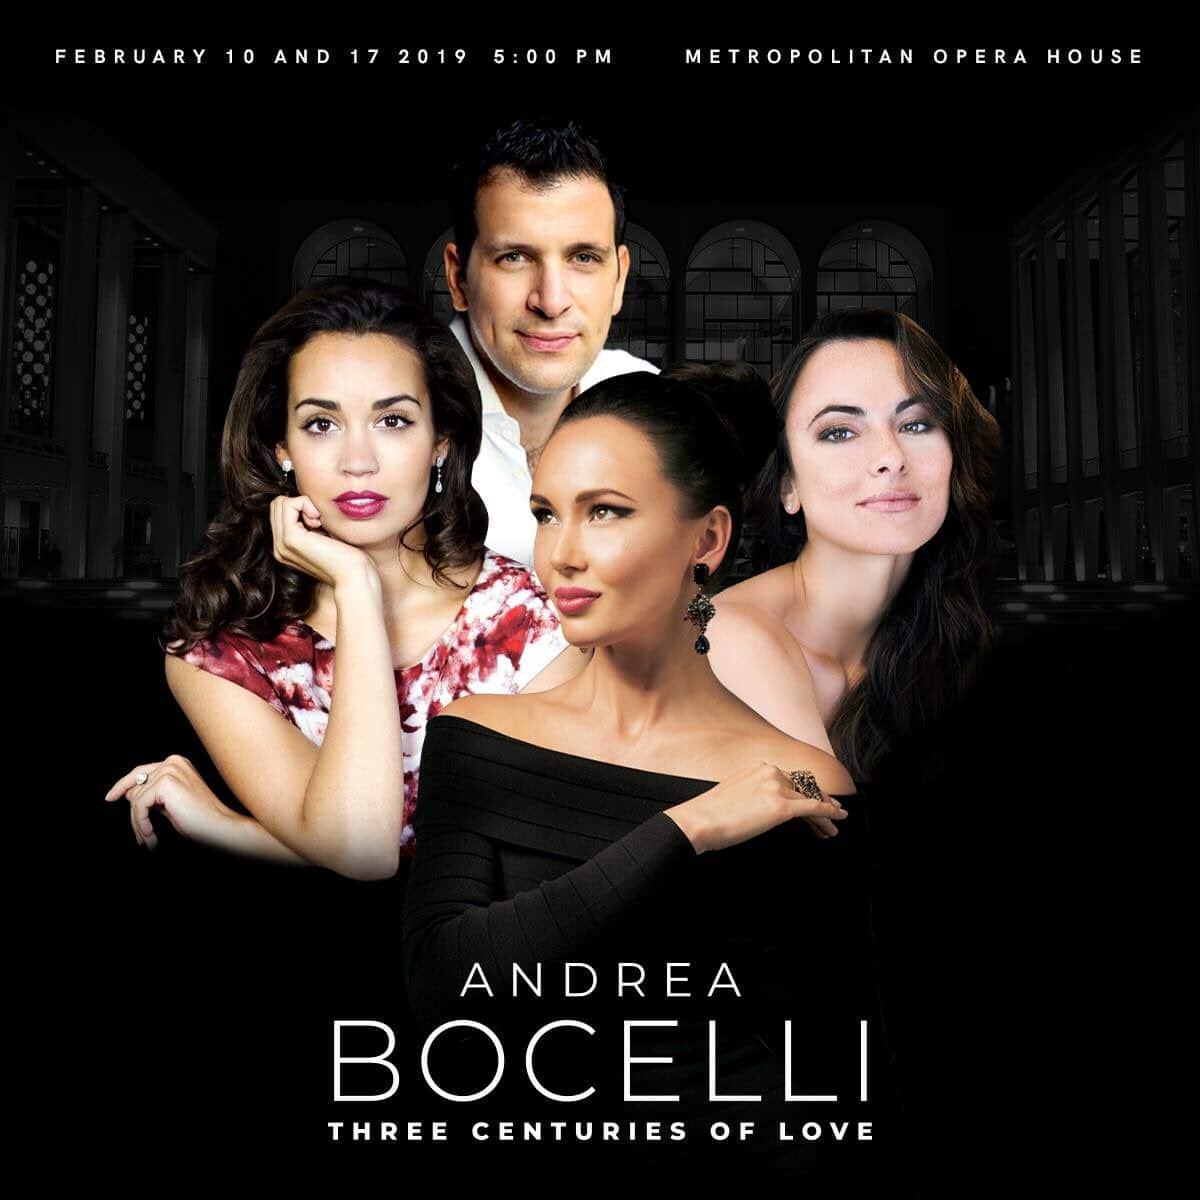 Four stars share Met stage with Andrea Bocelli